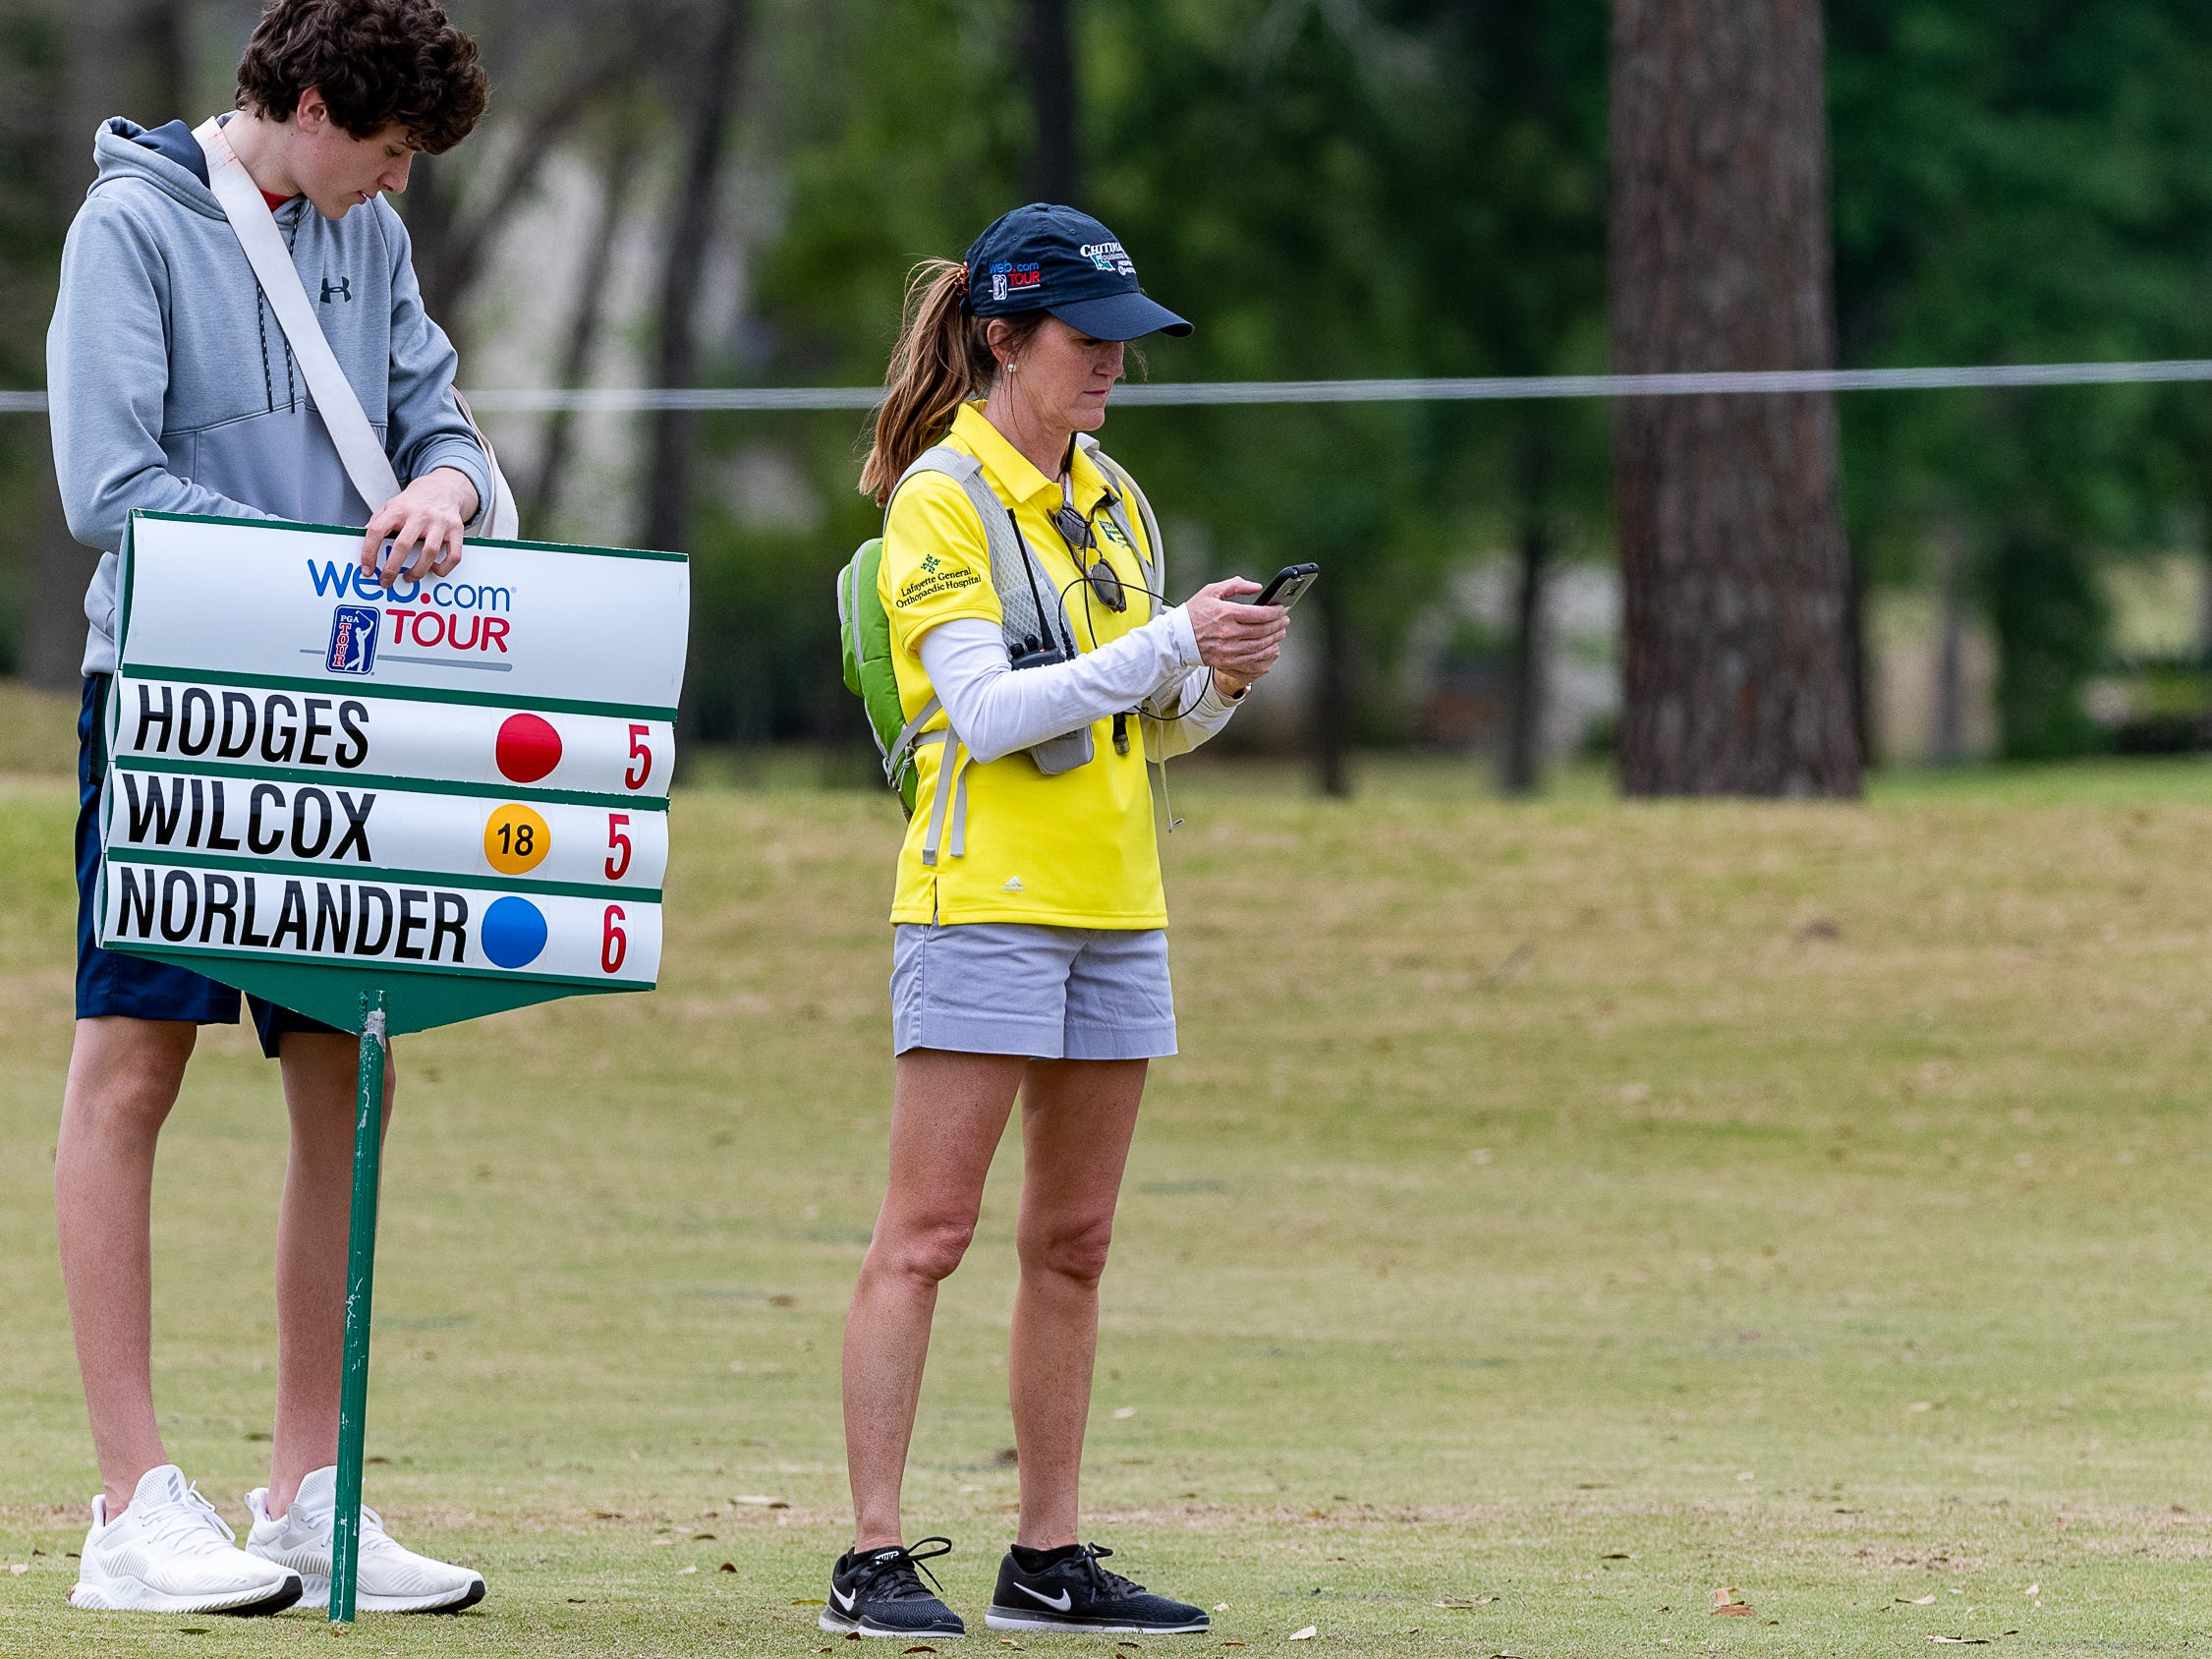 Tournament Volunteer Angela Stewart during the final round of the Web.com 2019 Chitimacha Louisiana Open presented by Mistras at Le Triomphe. Sunday, March 24, 2019.